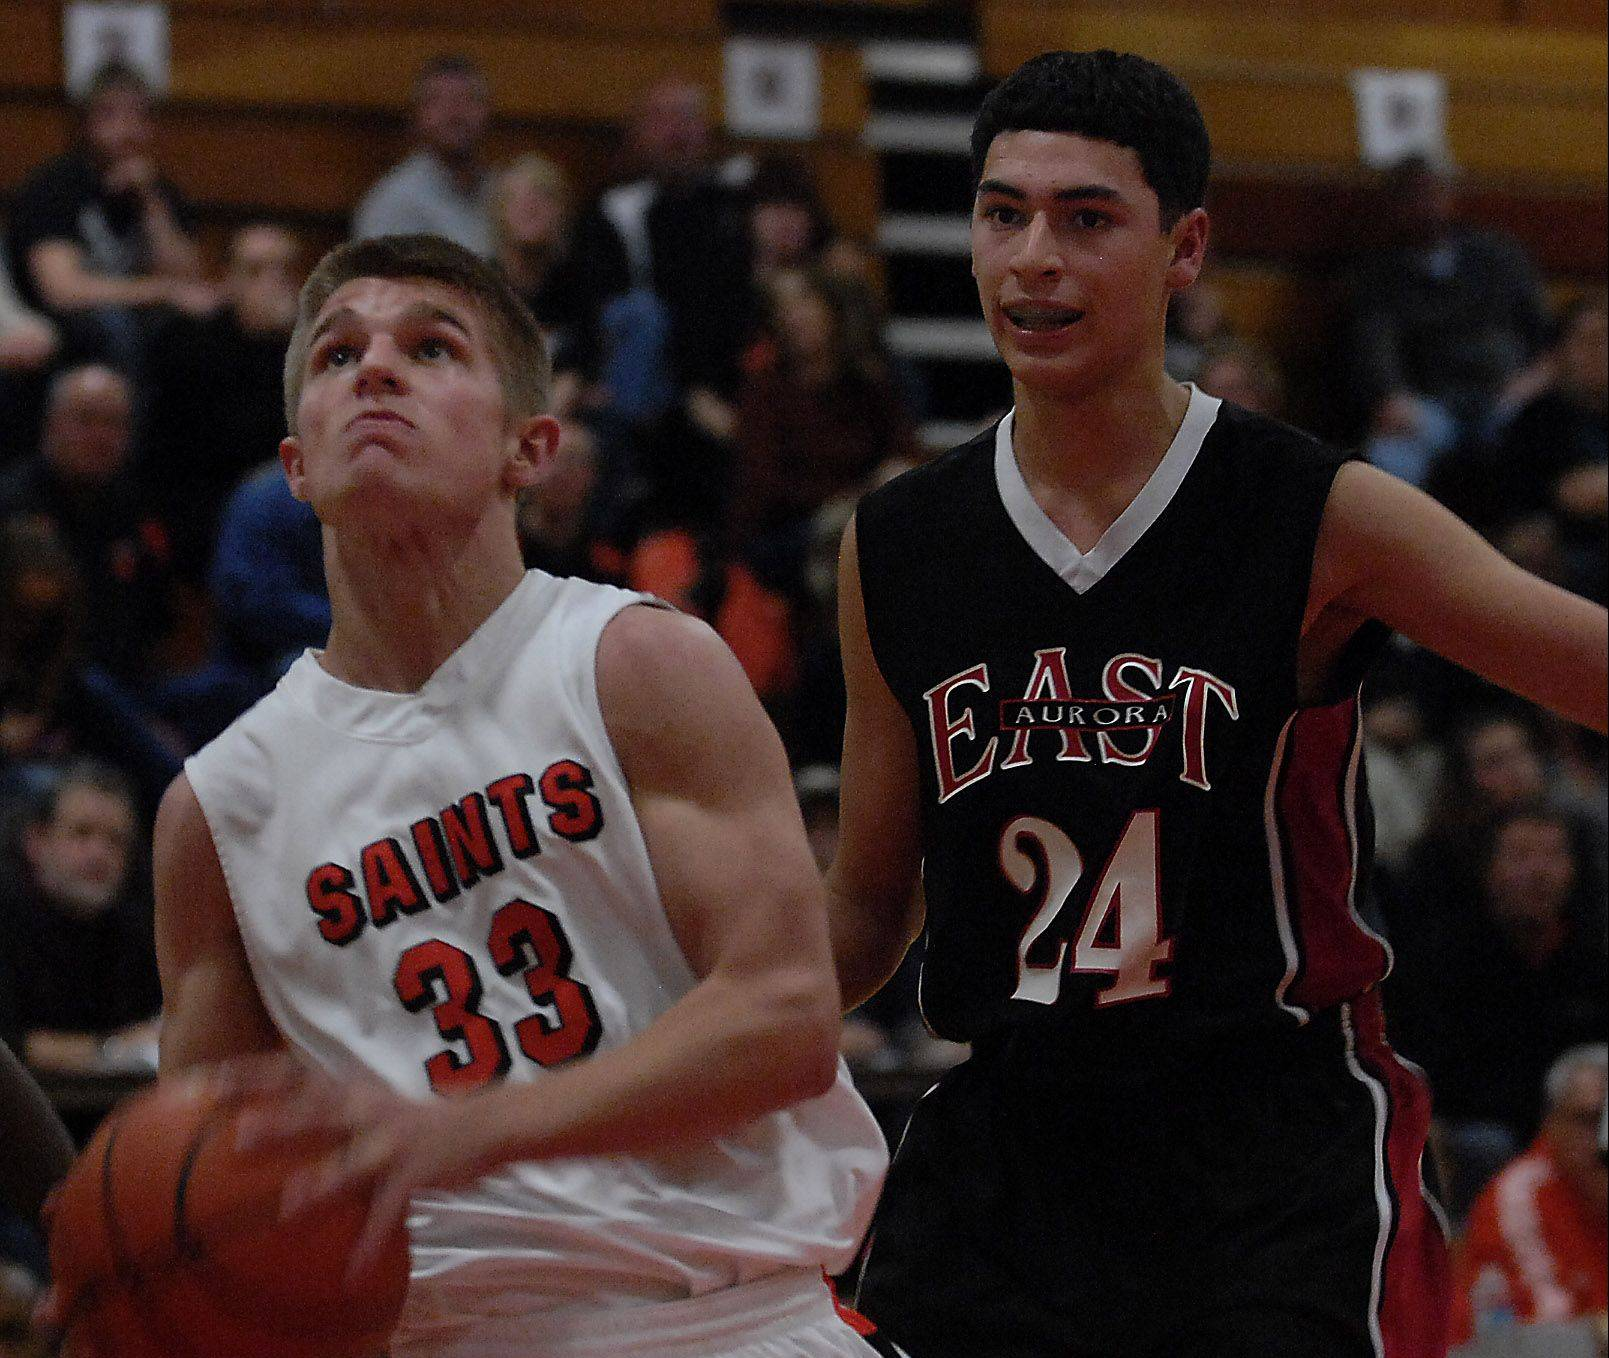 St. Charles East's Brent Kage drives to the basket with East Aurora's Jonathan Villezcas defending during the Saints' 64-34 victory Monday in St. Charles.